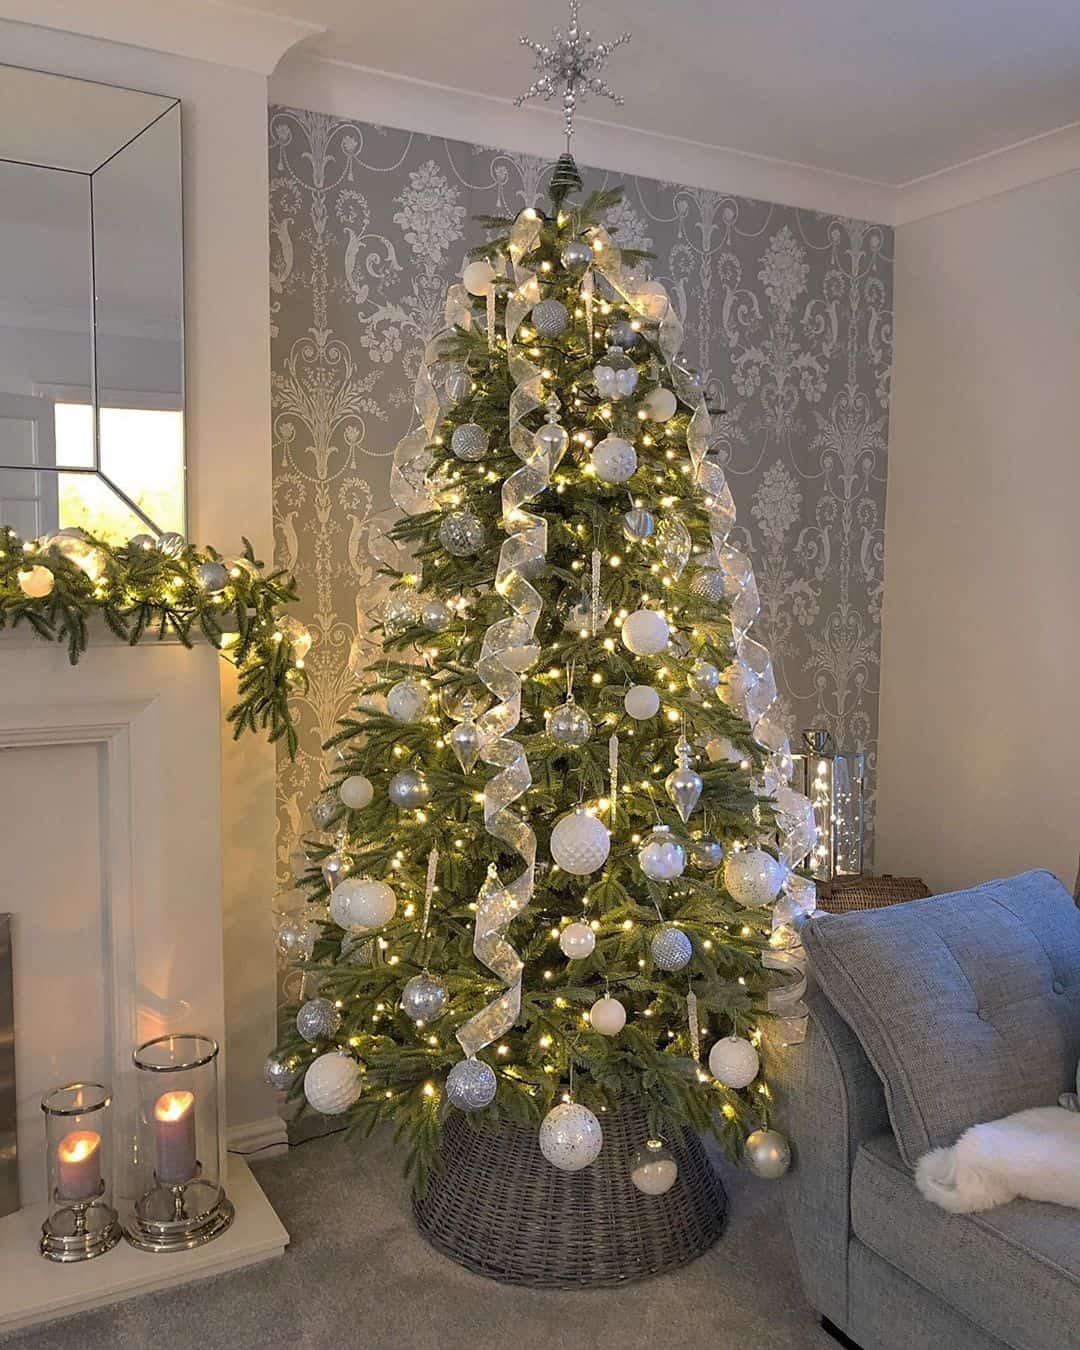 25 Charming Christmas Tree Decoration Ideas